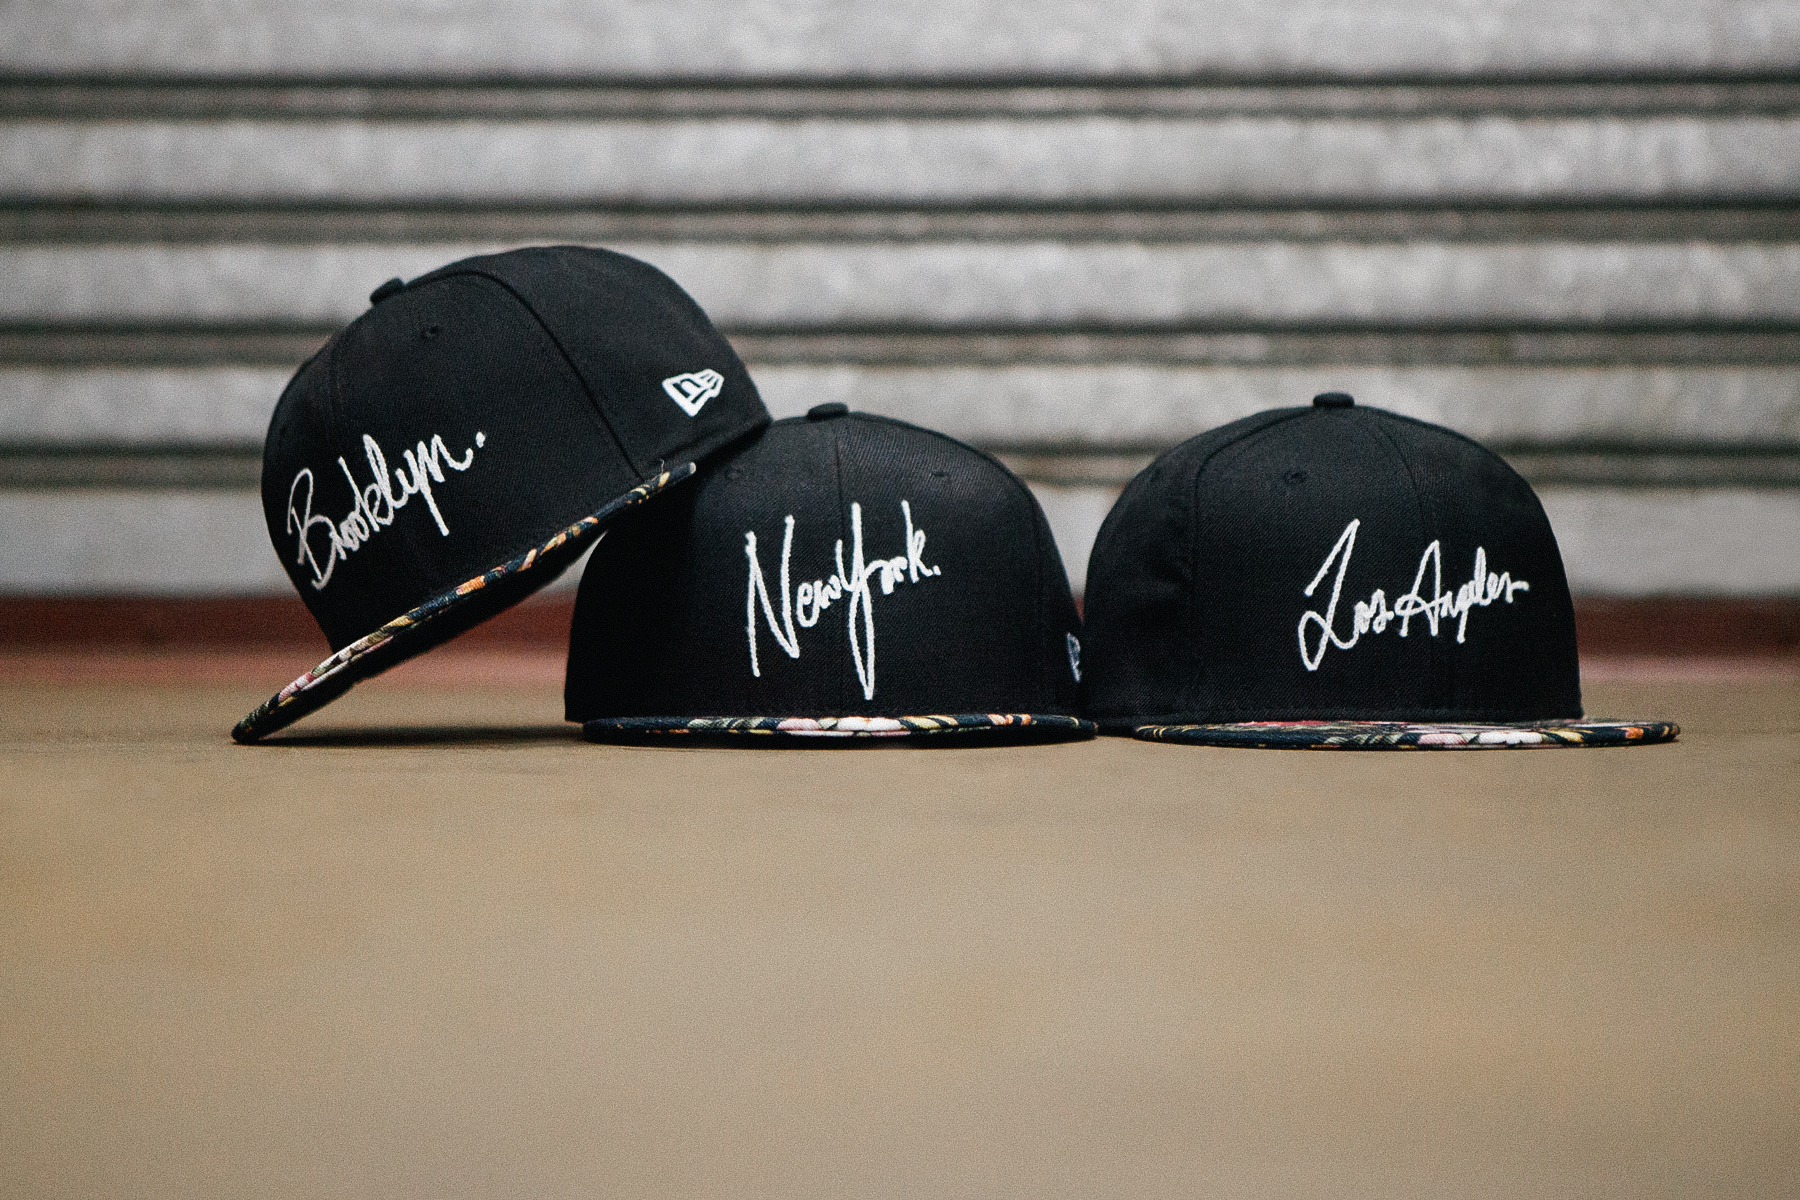 new era launches new cap collection paying homage to brooklyn new york and los angeles